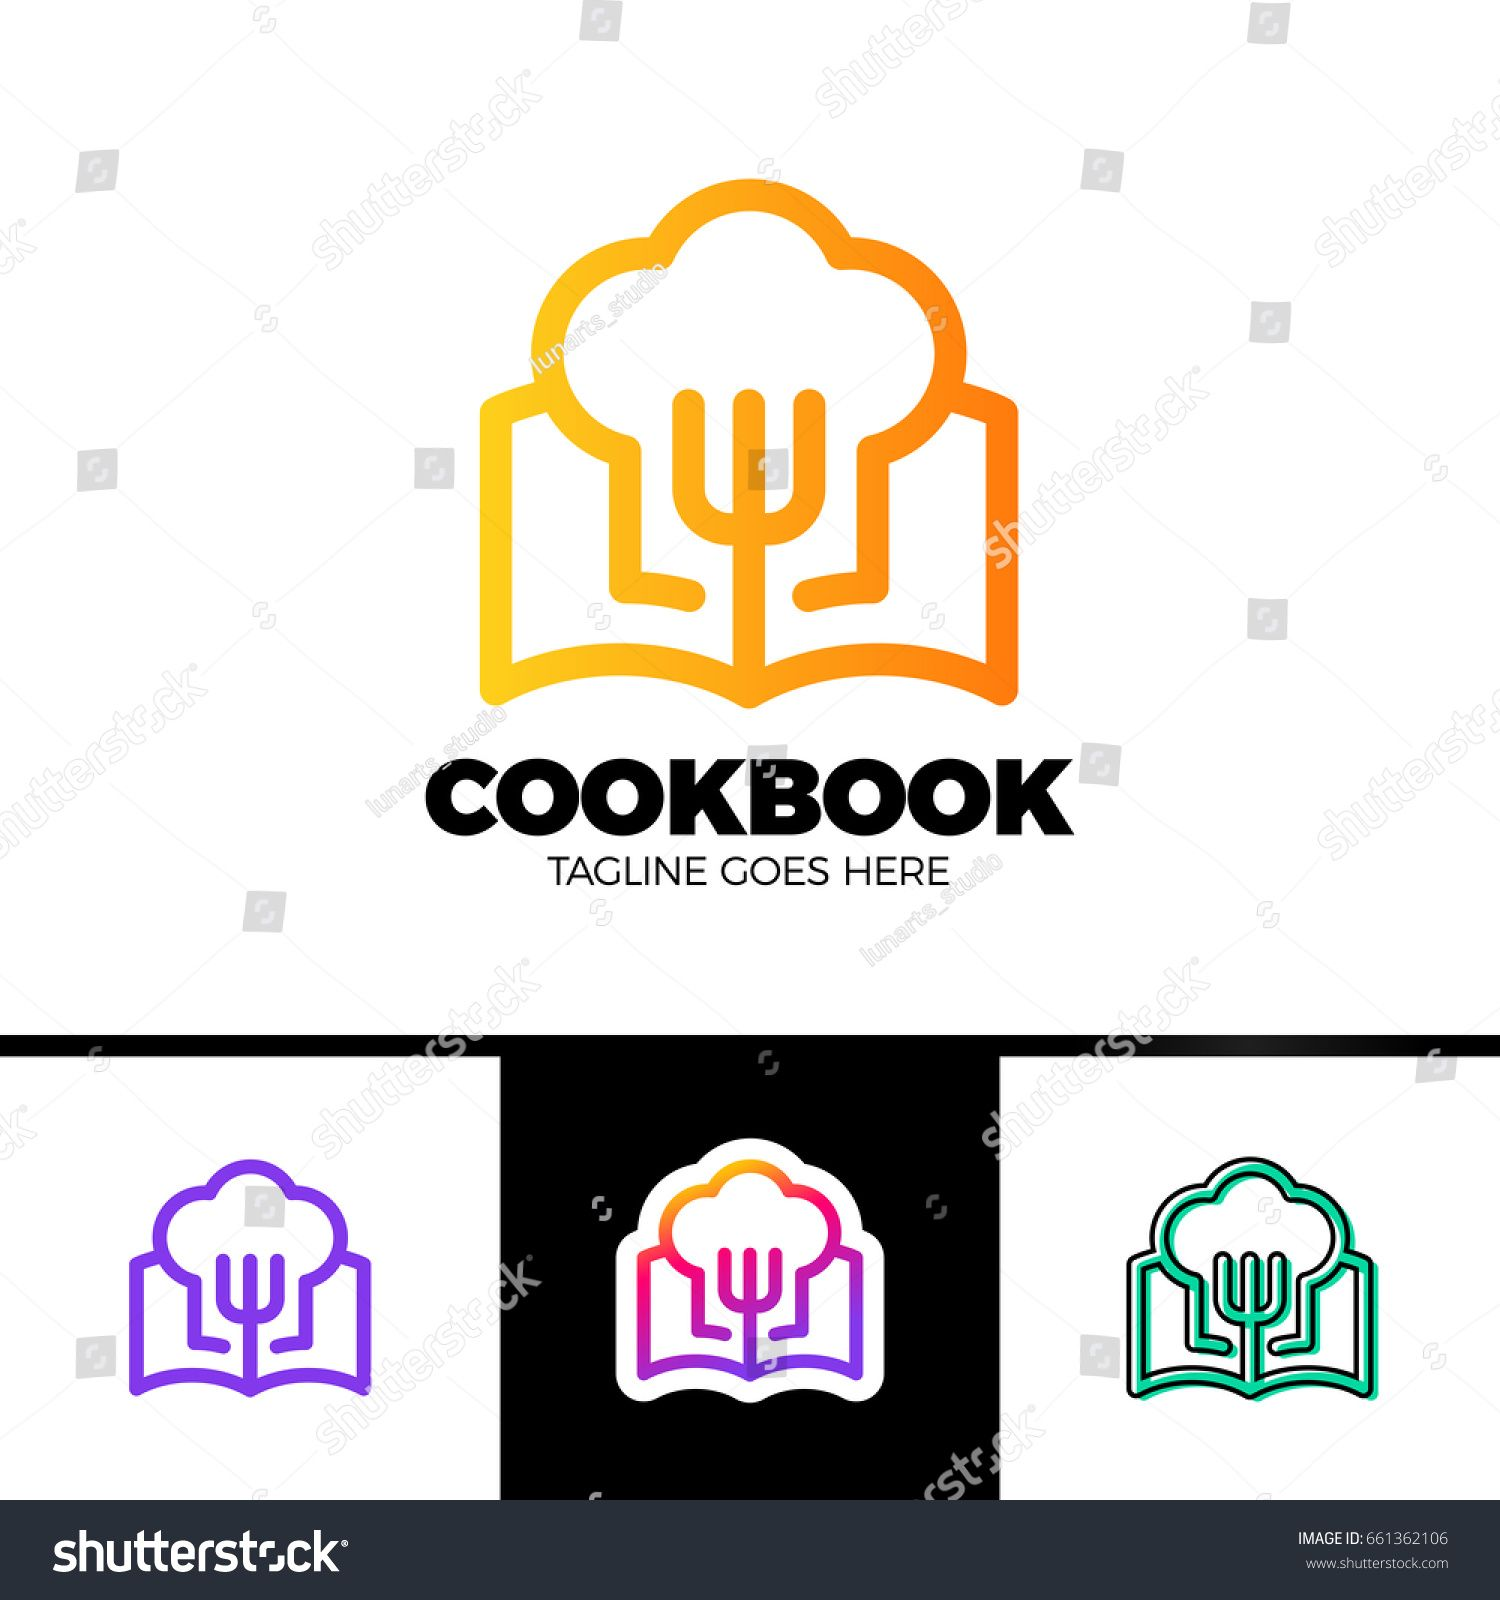 Recipe Book Logo Template Design in outline style Vector